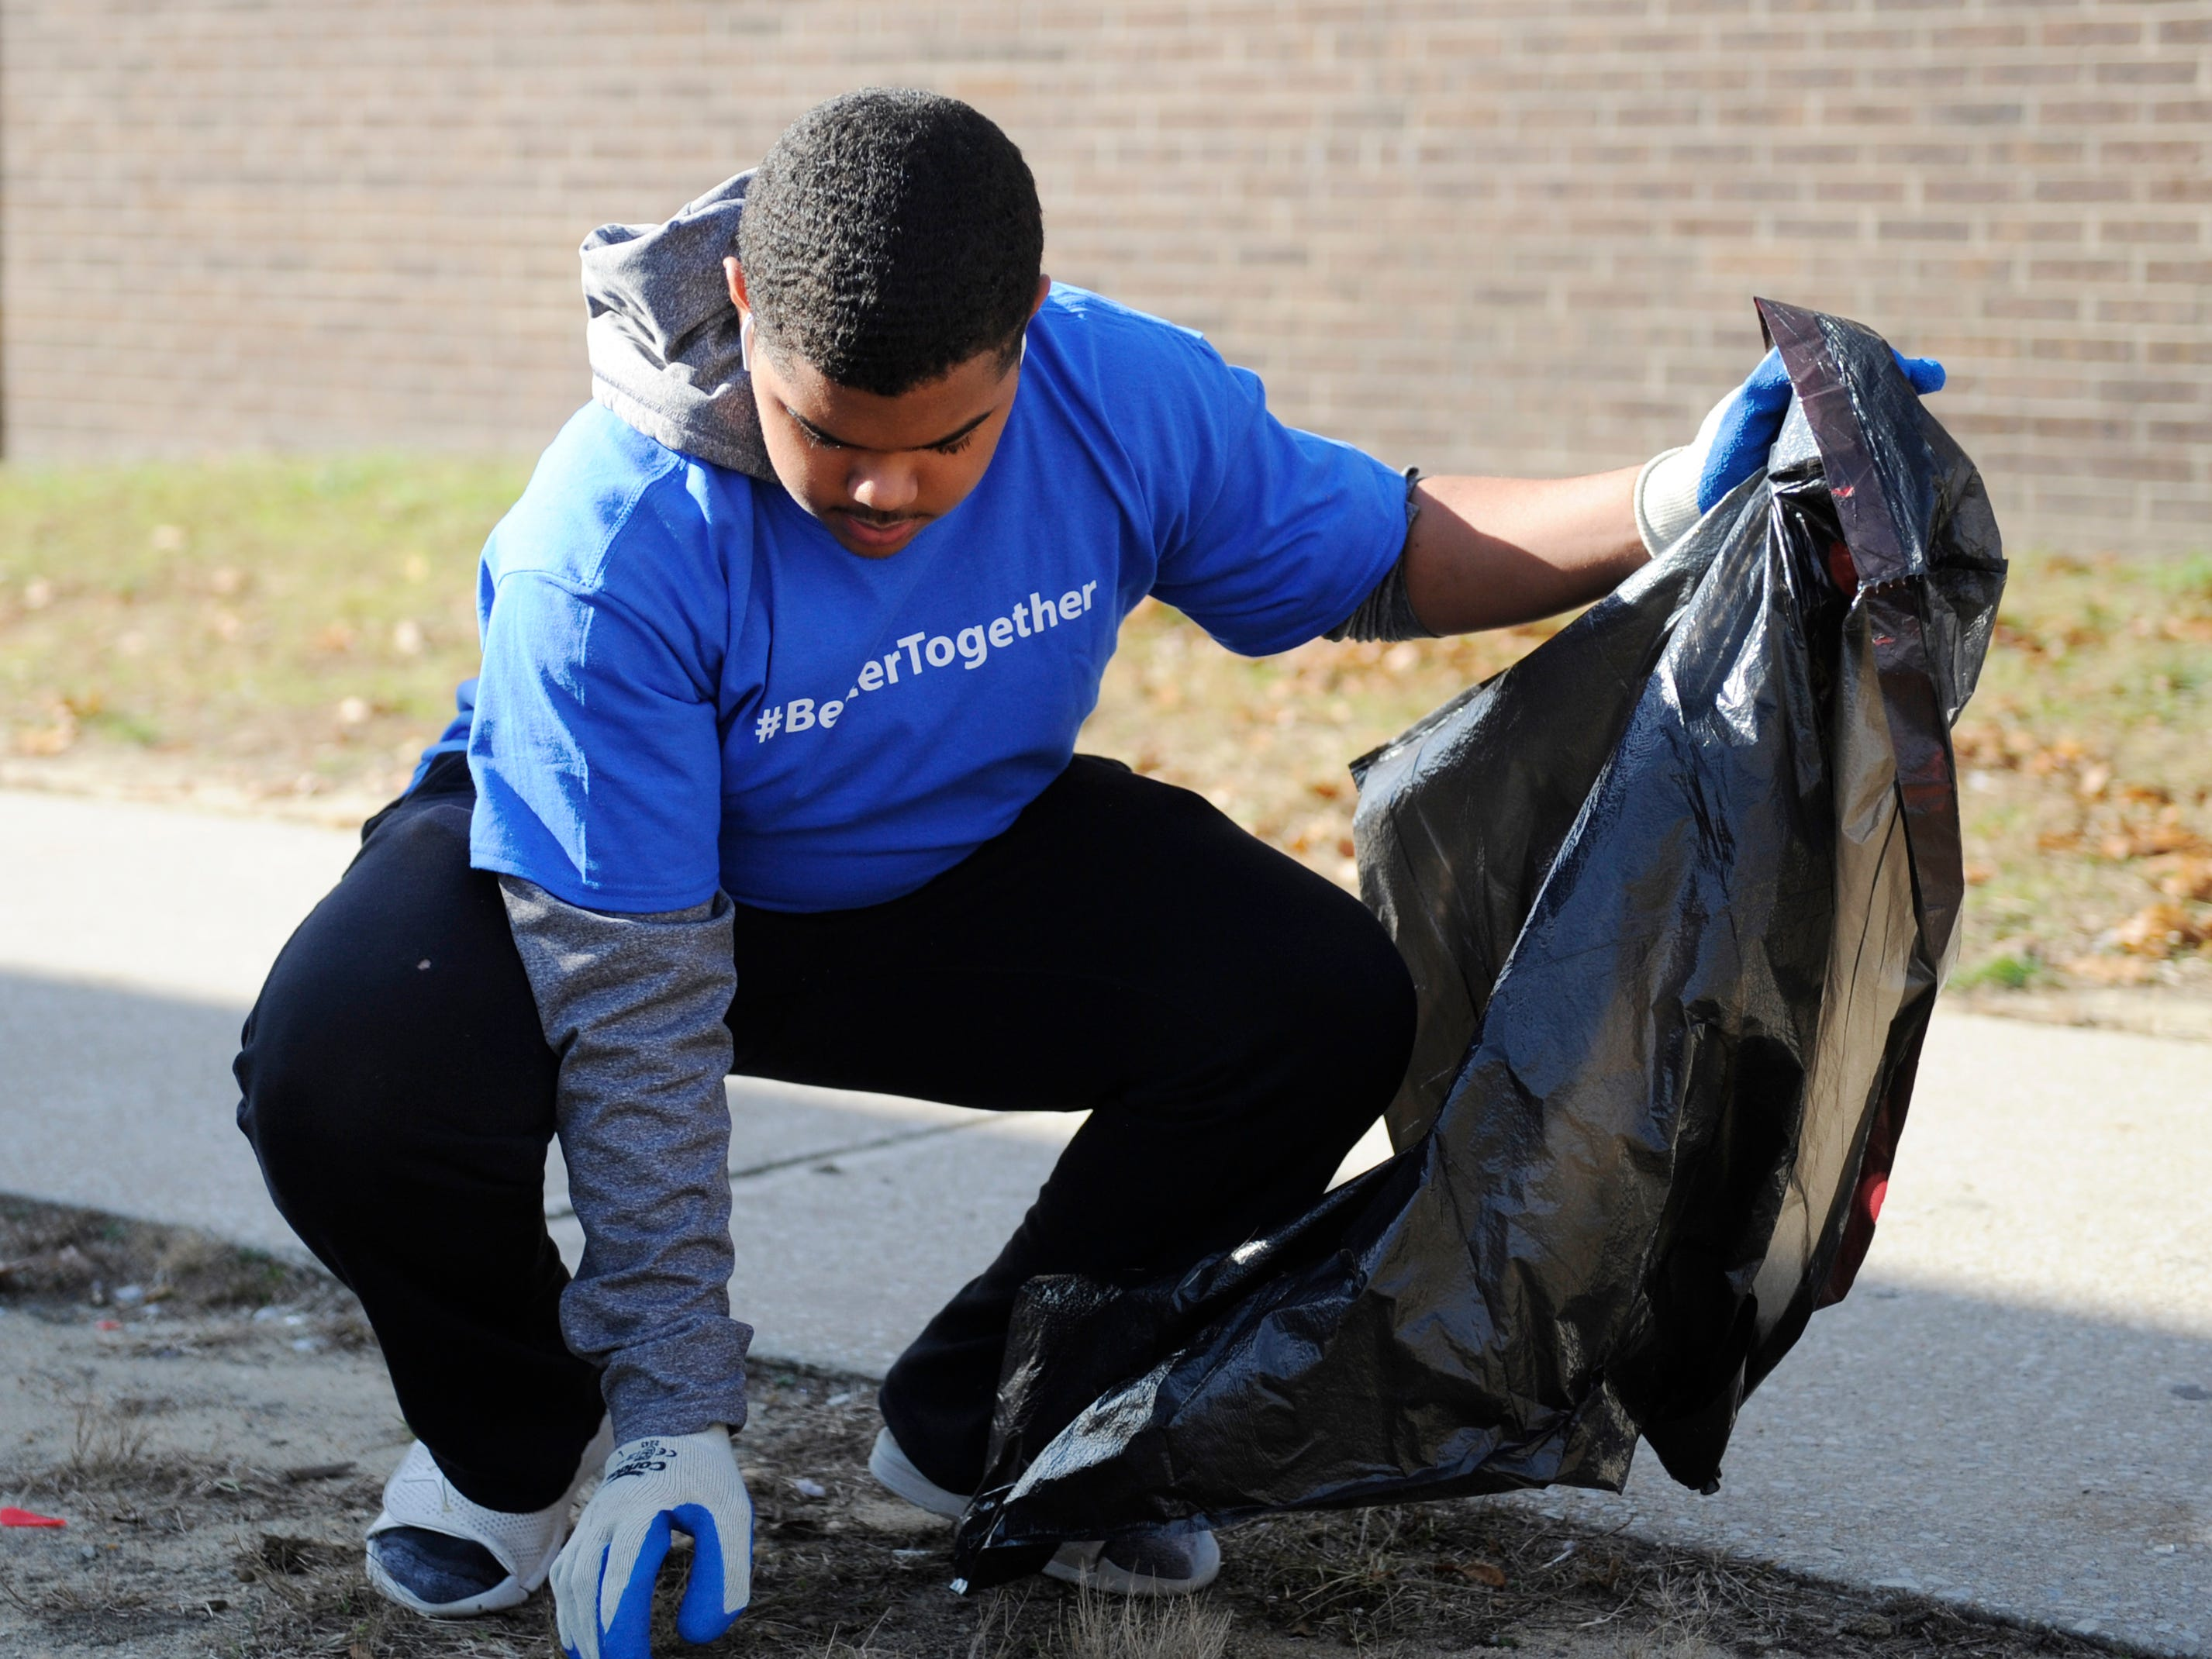 Milton White helps out during a community clean up event at Oakview Apartments in Millville on Thursday, November 8, 2018.